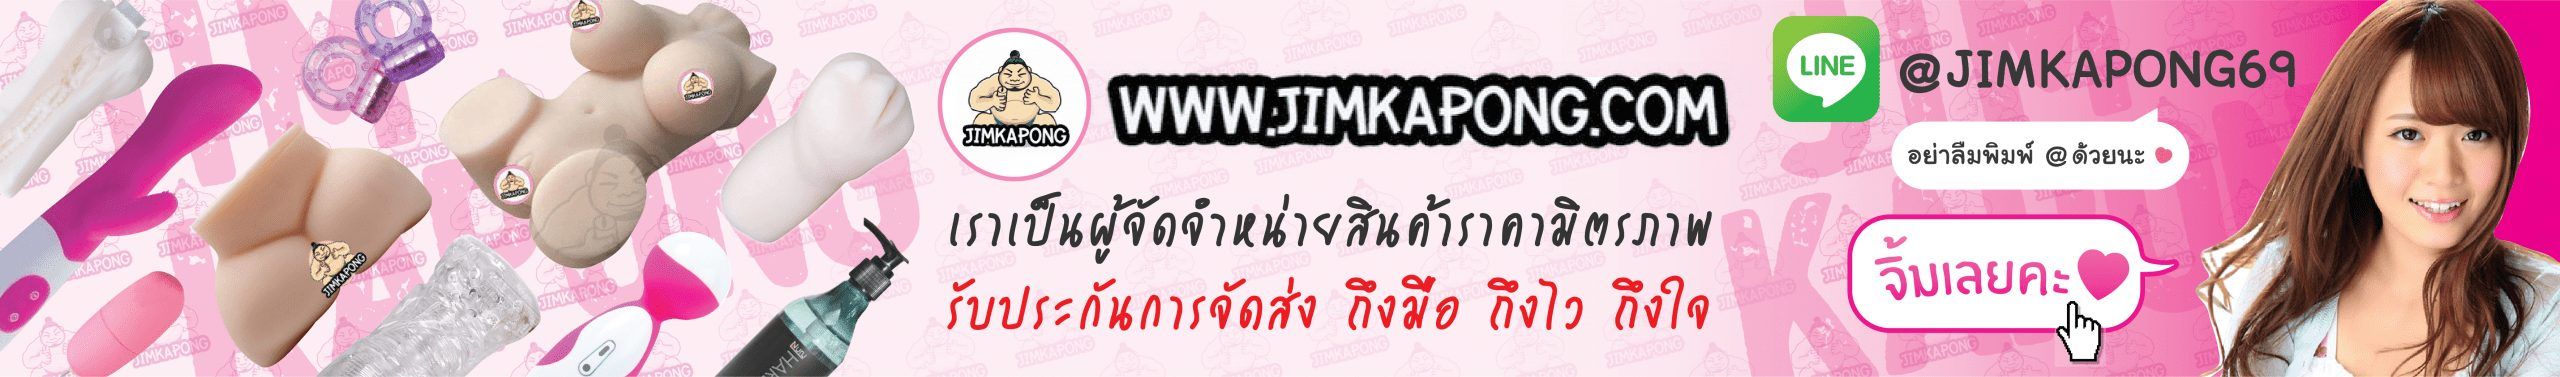 LO_JKP-Banner_W1700xH250px-04 (1)